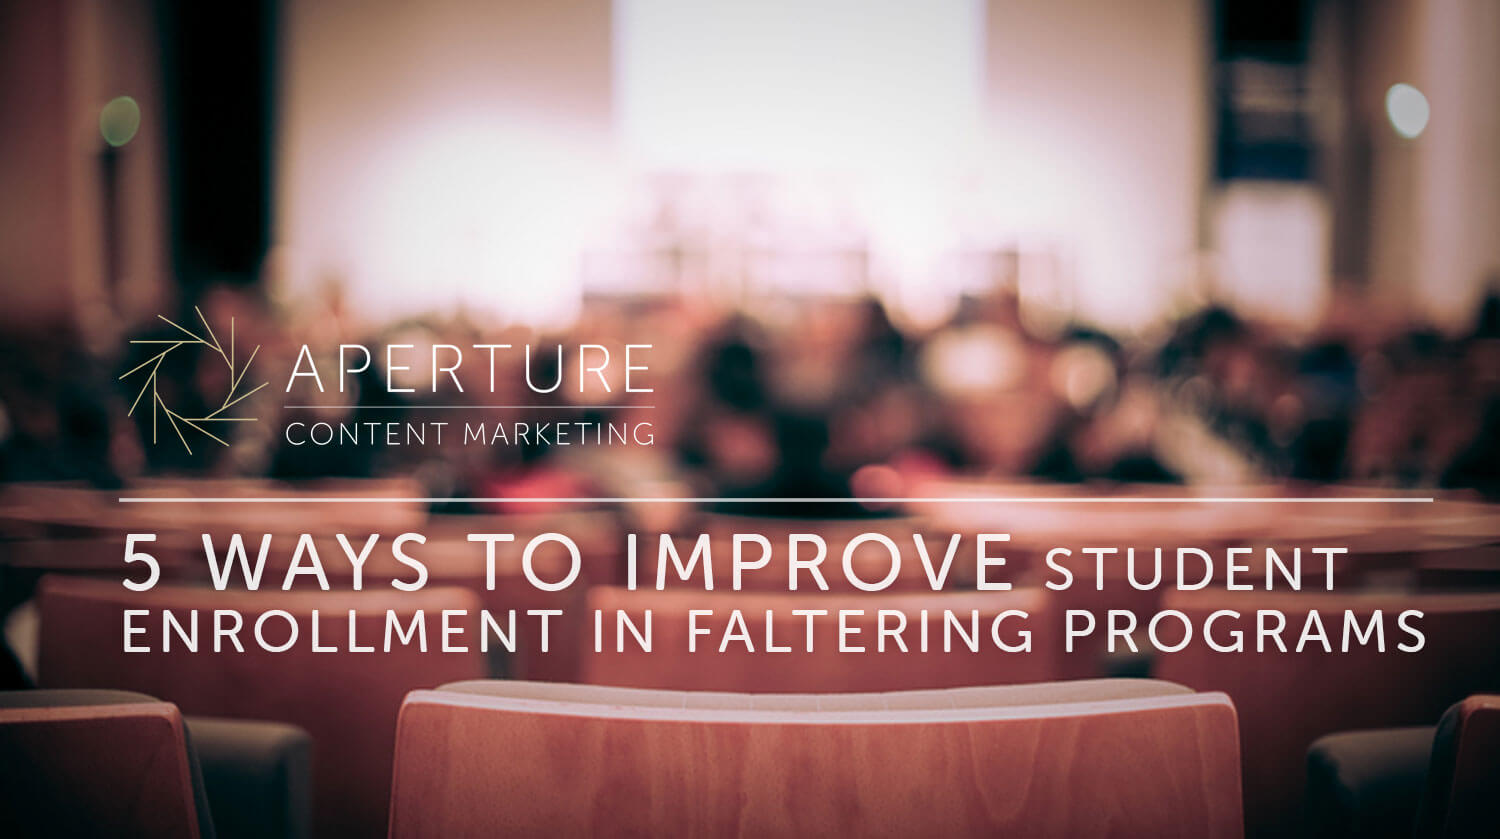 5 Ways to Improve Student Enrollment in Faltering Programs